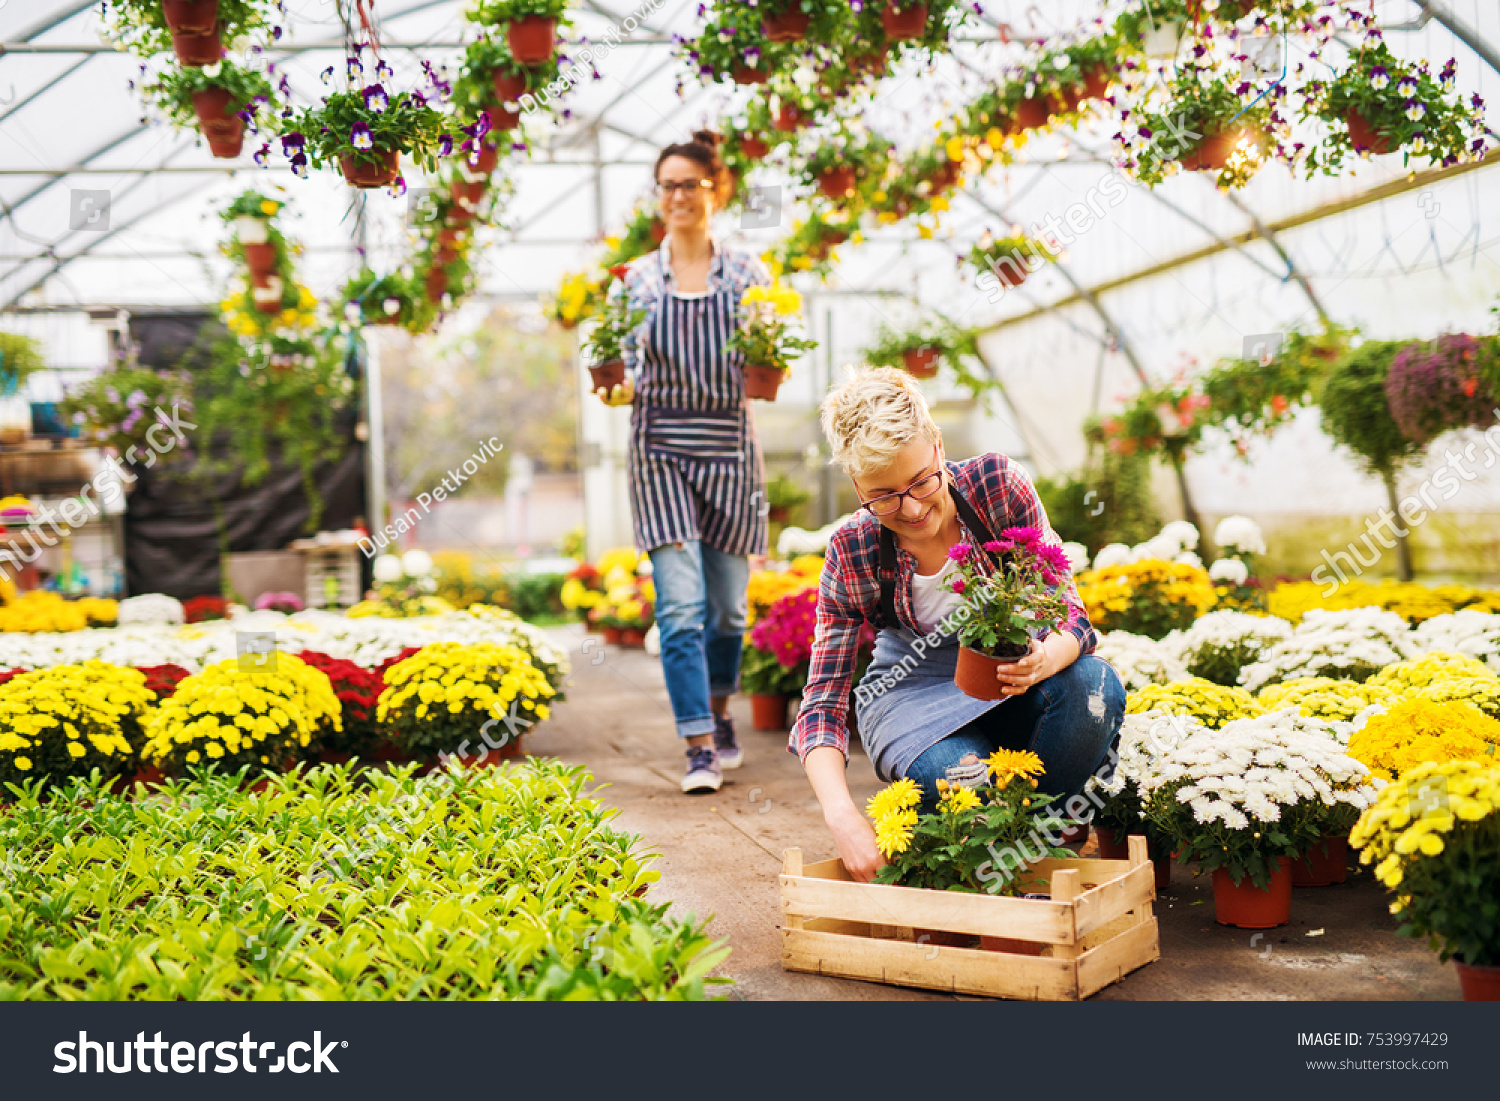 Two Beautiful Charming Busy Florist Stock Photo (Royalty Free ... on beautiful floral design, beautiful timeline design, beautiful building design, beautiful industrial design, beautiful yard design, beautiful greenhouse structure, beautiful fish design, beautiful furniture design, beautiful garden design, beautiful bar design, beautiful family design, beautiful gift shop design, beautiful greenhouse garden, beautiful nature design, beautiful home greenhouse, beautiful greenhouse interiors, beautiful small greenhouses, beautiful hospital design, my garden layout design, beautiful solar design,